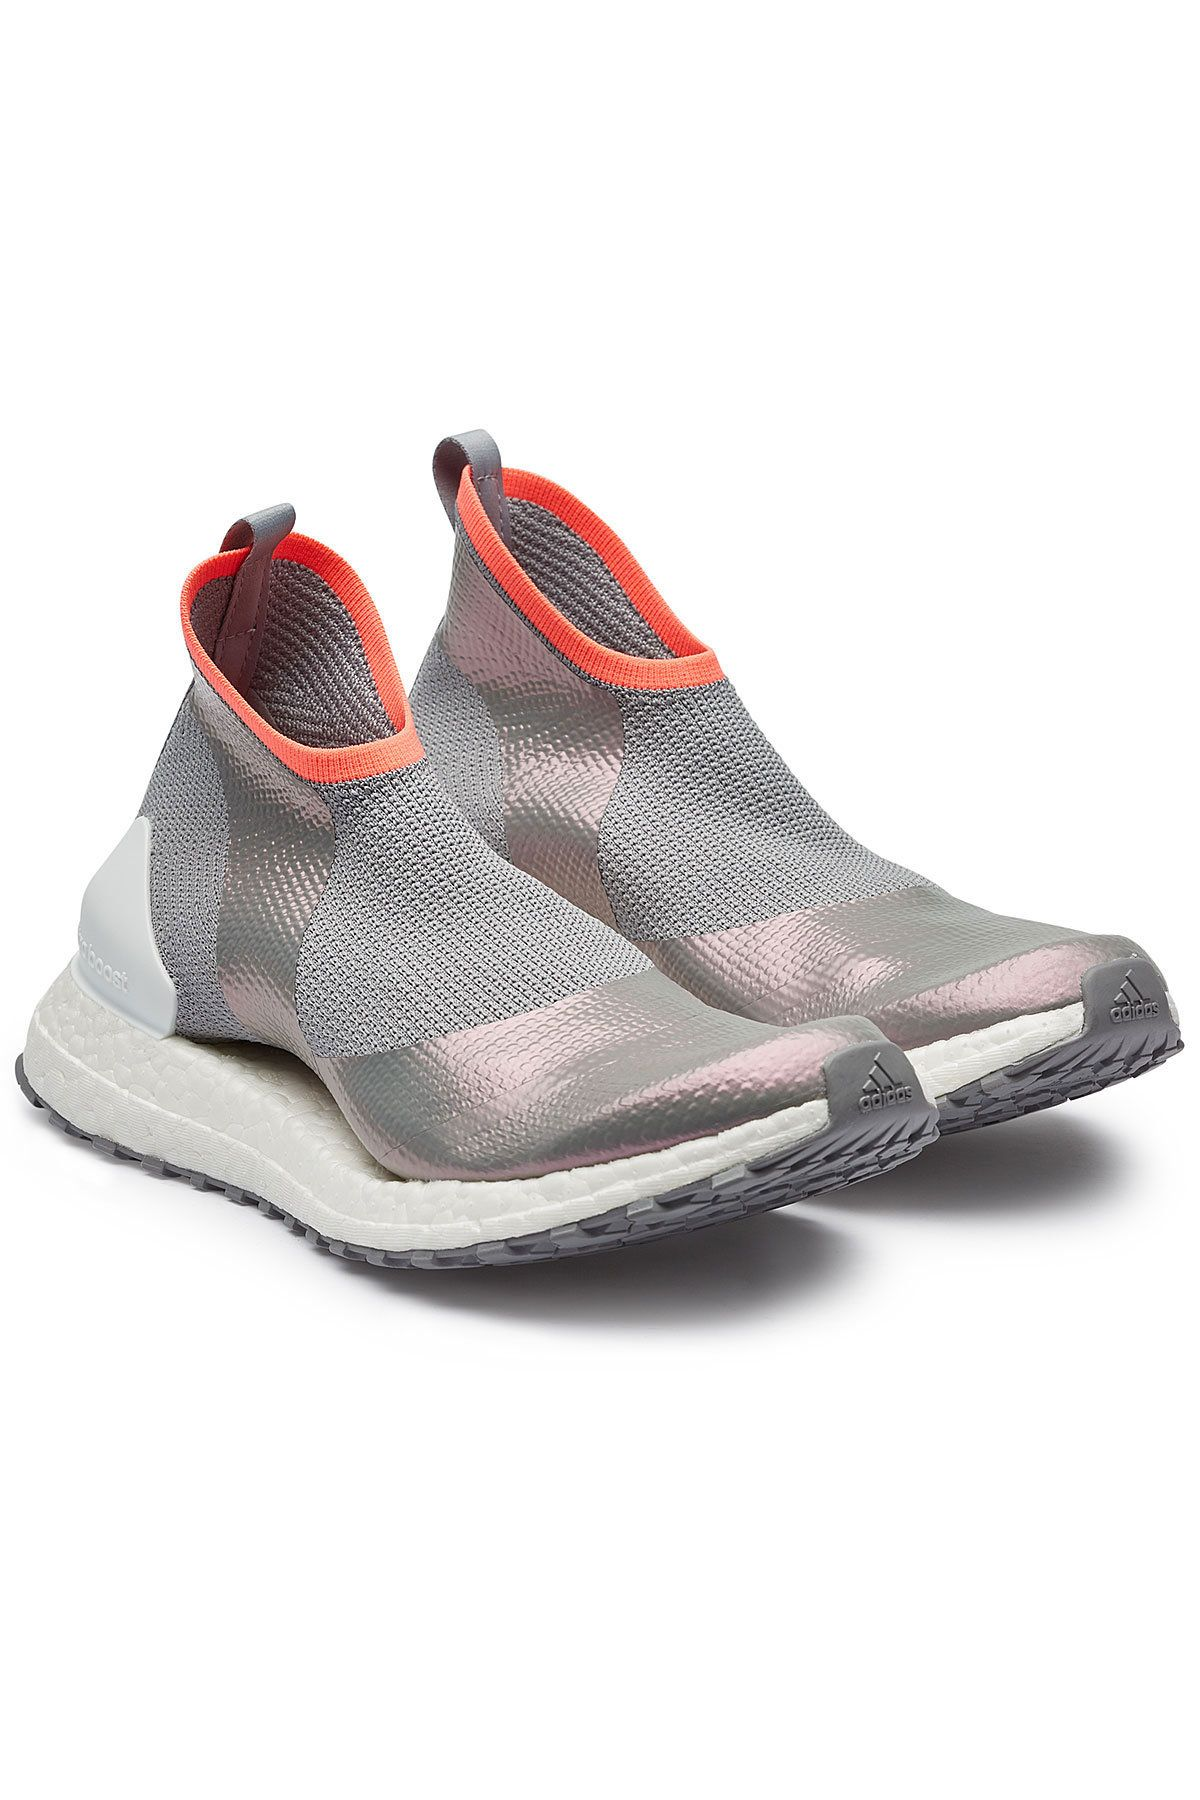 adidas by Stella McCartney ULTRA BOOST X ALL TERRAIN